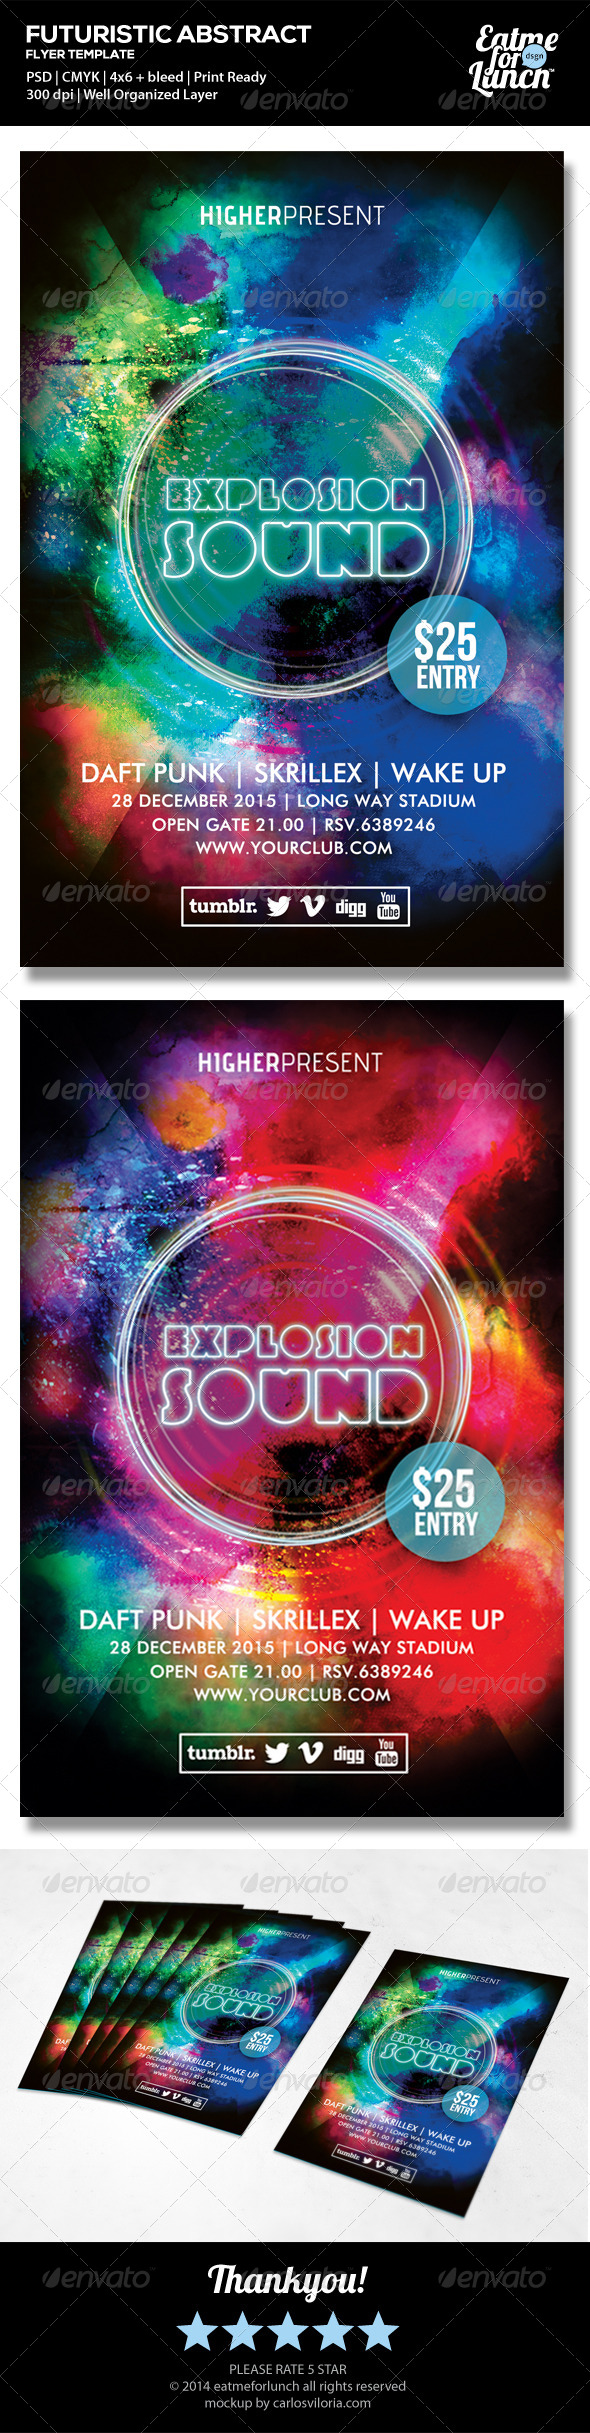 Futuristic Dance/Club Music Flyer Templates - Clubs & Parties Events